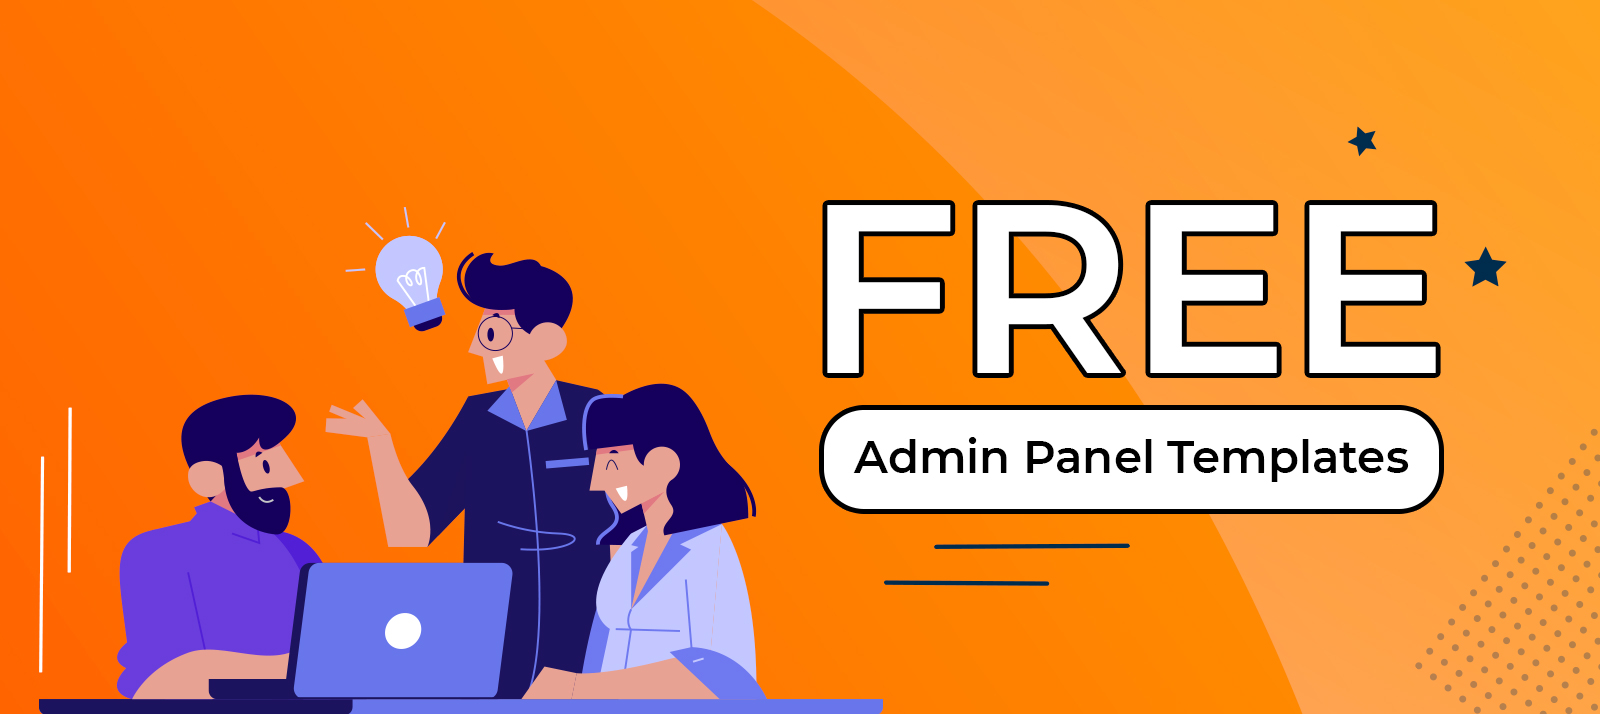 29 Free HTML5 and CSS3 Admin Panel Templates To Download In 2020